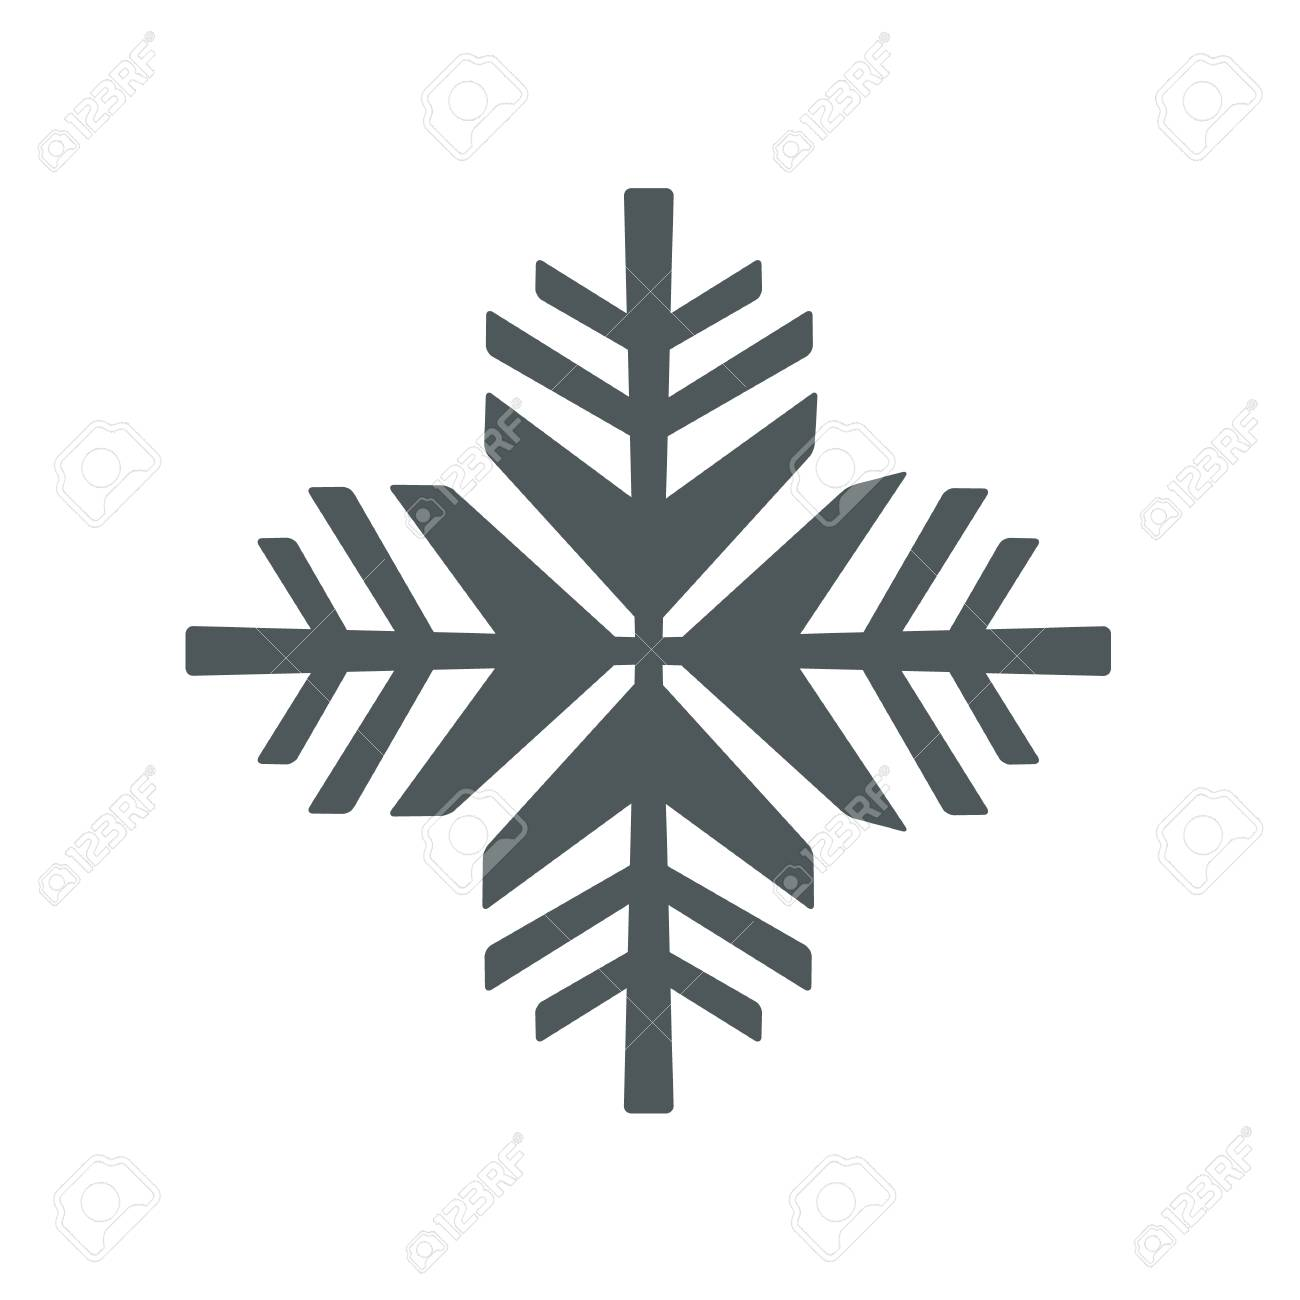 snowflake icon vector snowflake sign isolated snowflake symbol rh 123rf com vector snowflakes free download vector snowflake patterns